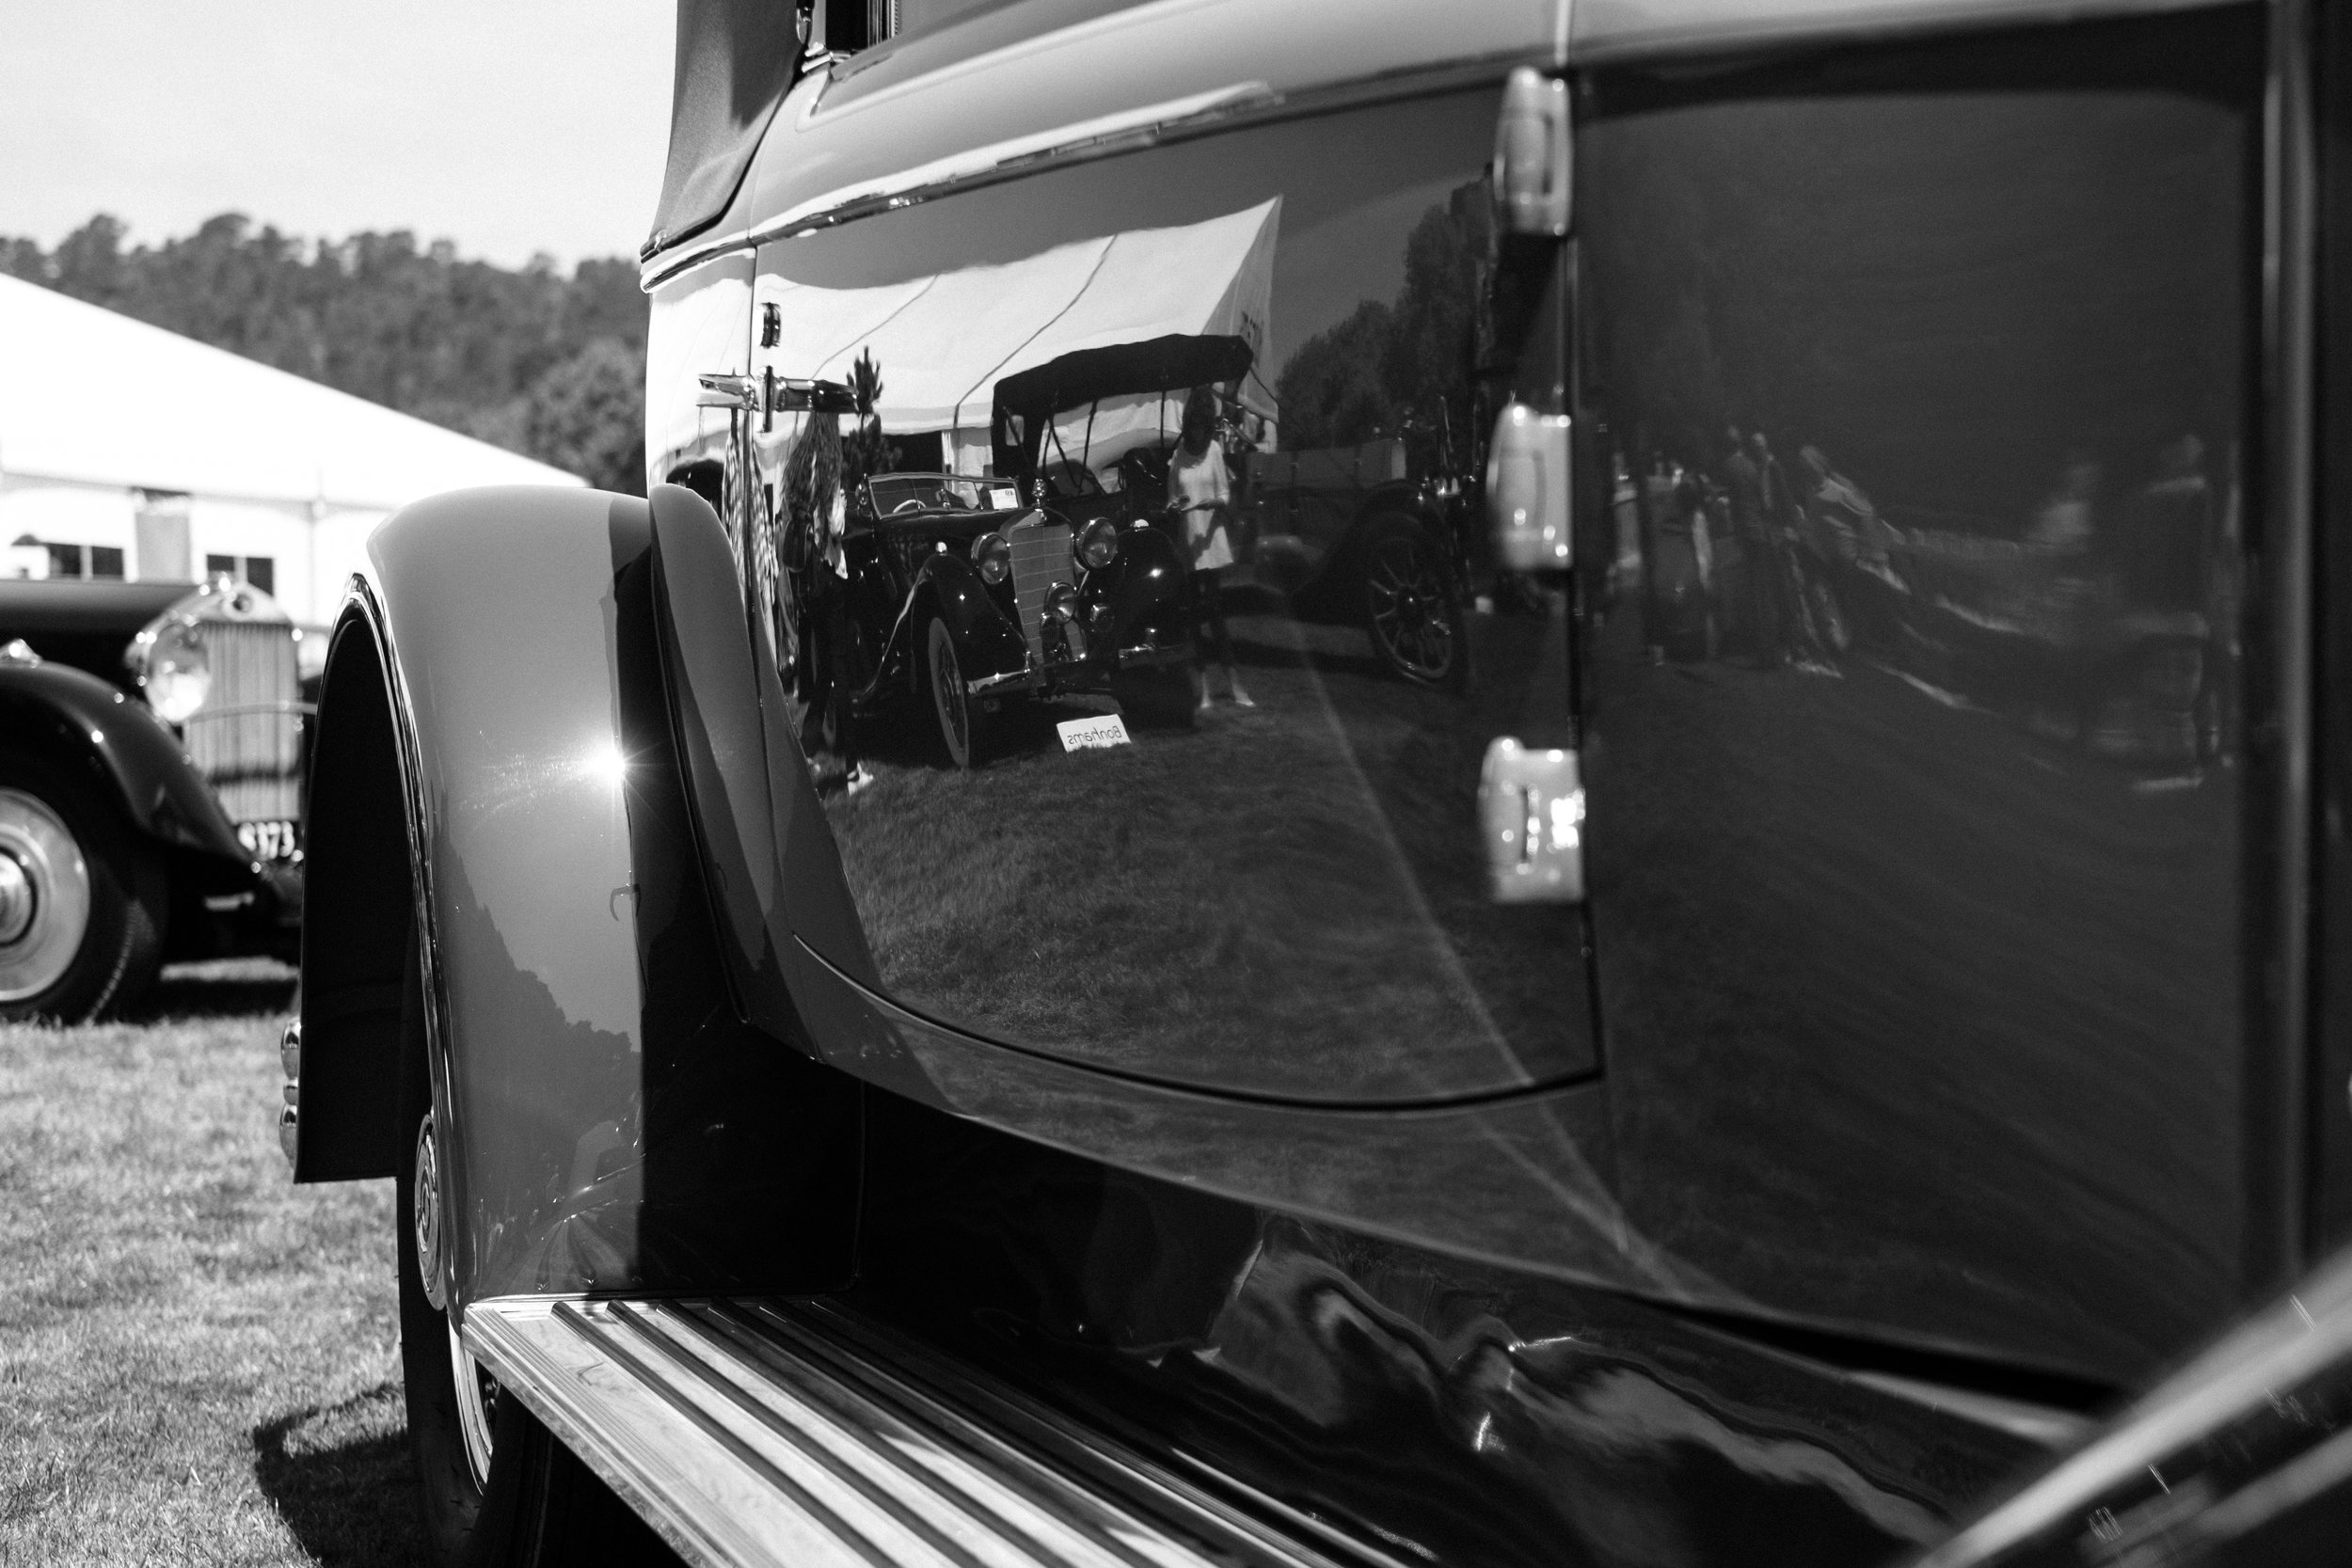 Reflections in a car door of vintage cars on display at Pebble Beach Concours in California, USA